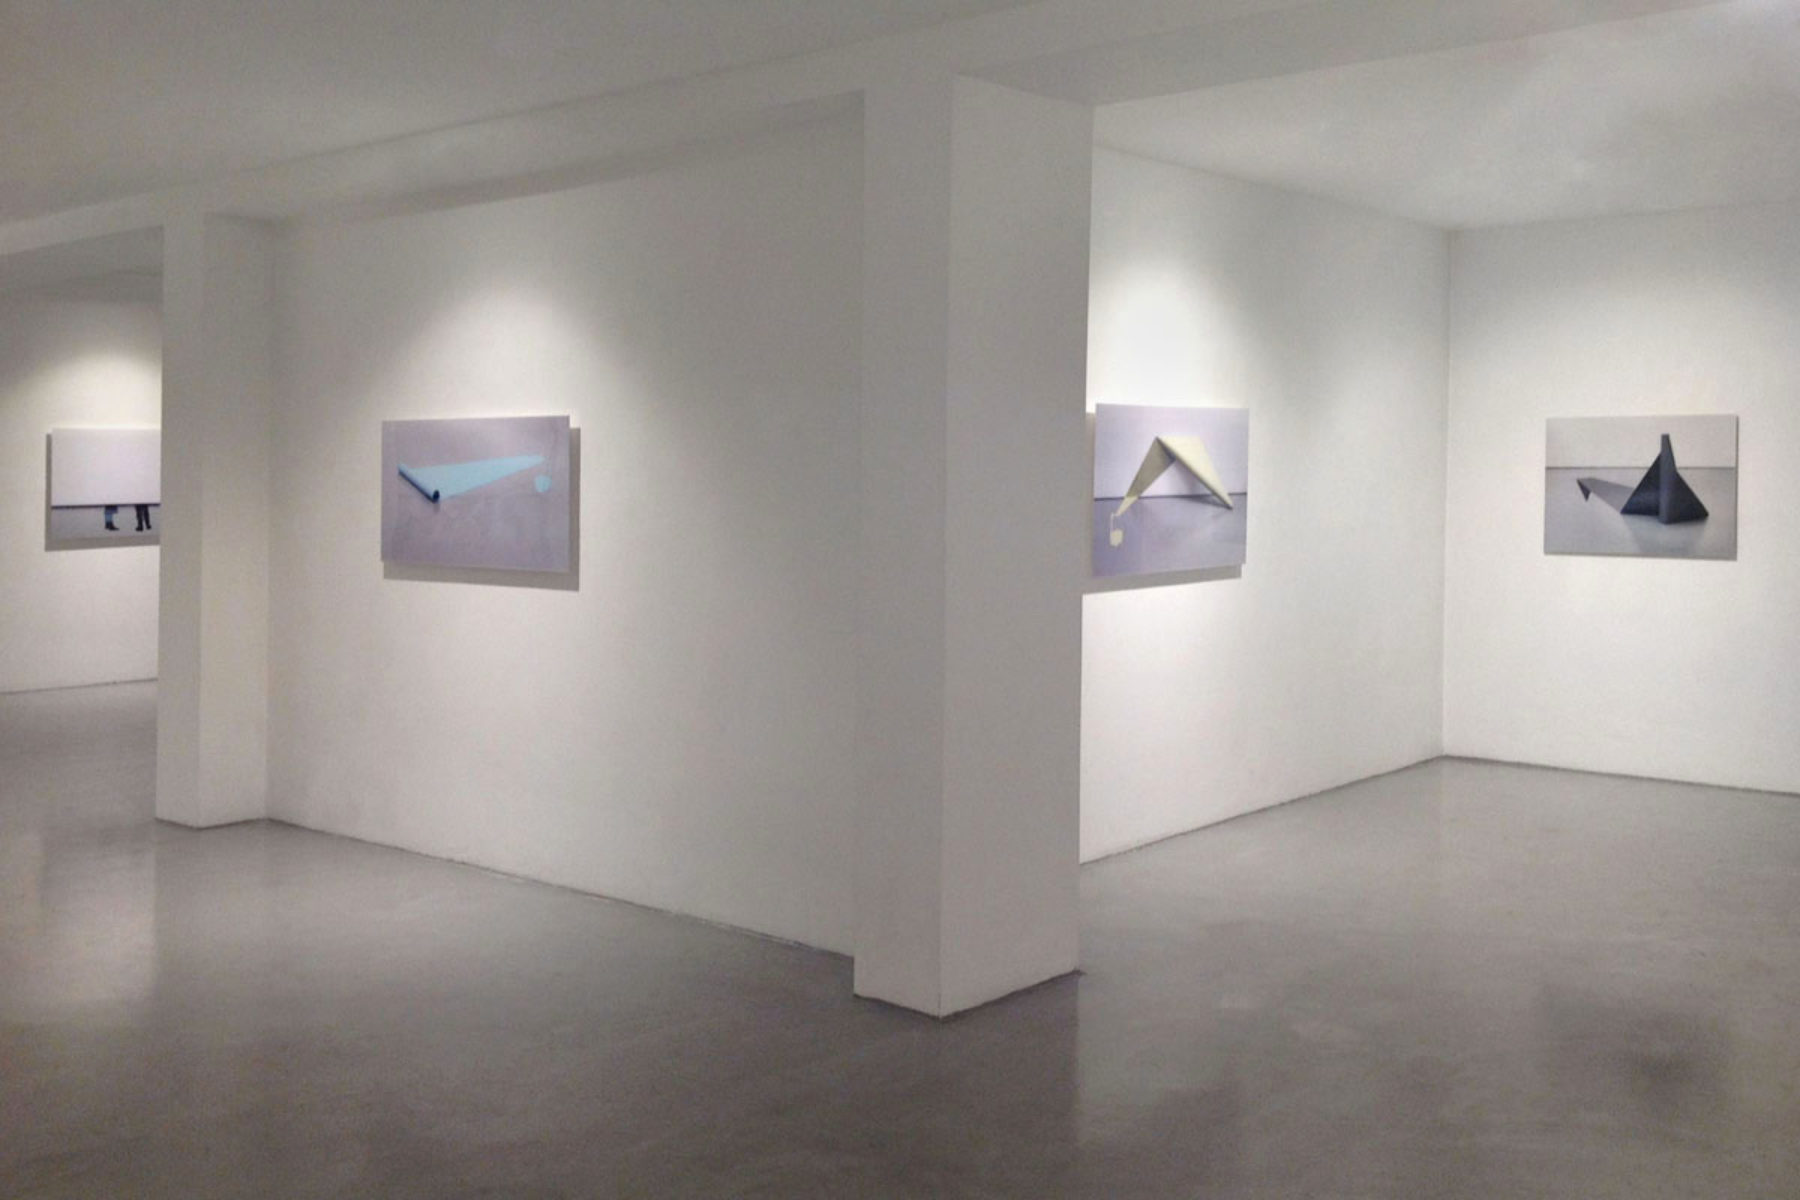 I. Eškinja, Infinity paper, 2013, show view at Deanesi Gallery, 11